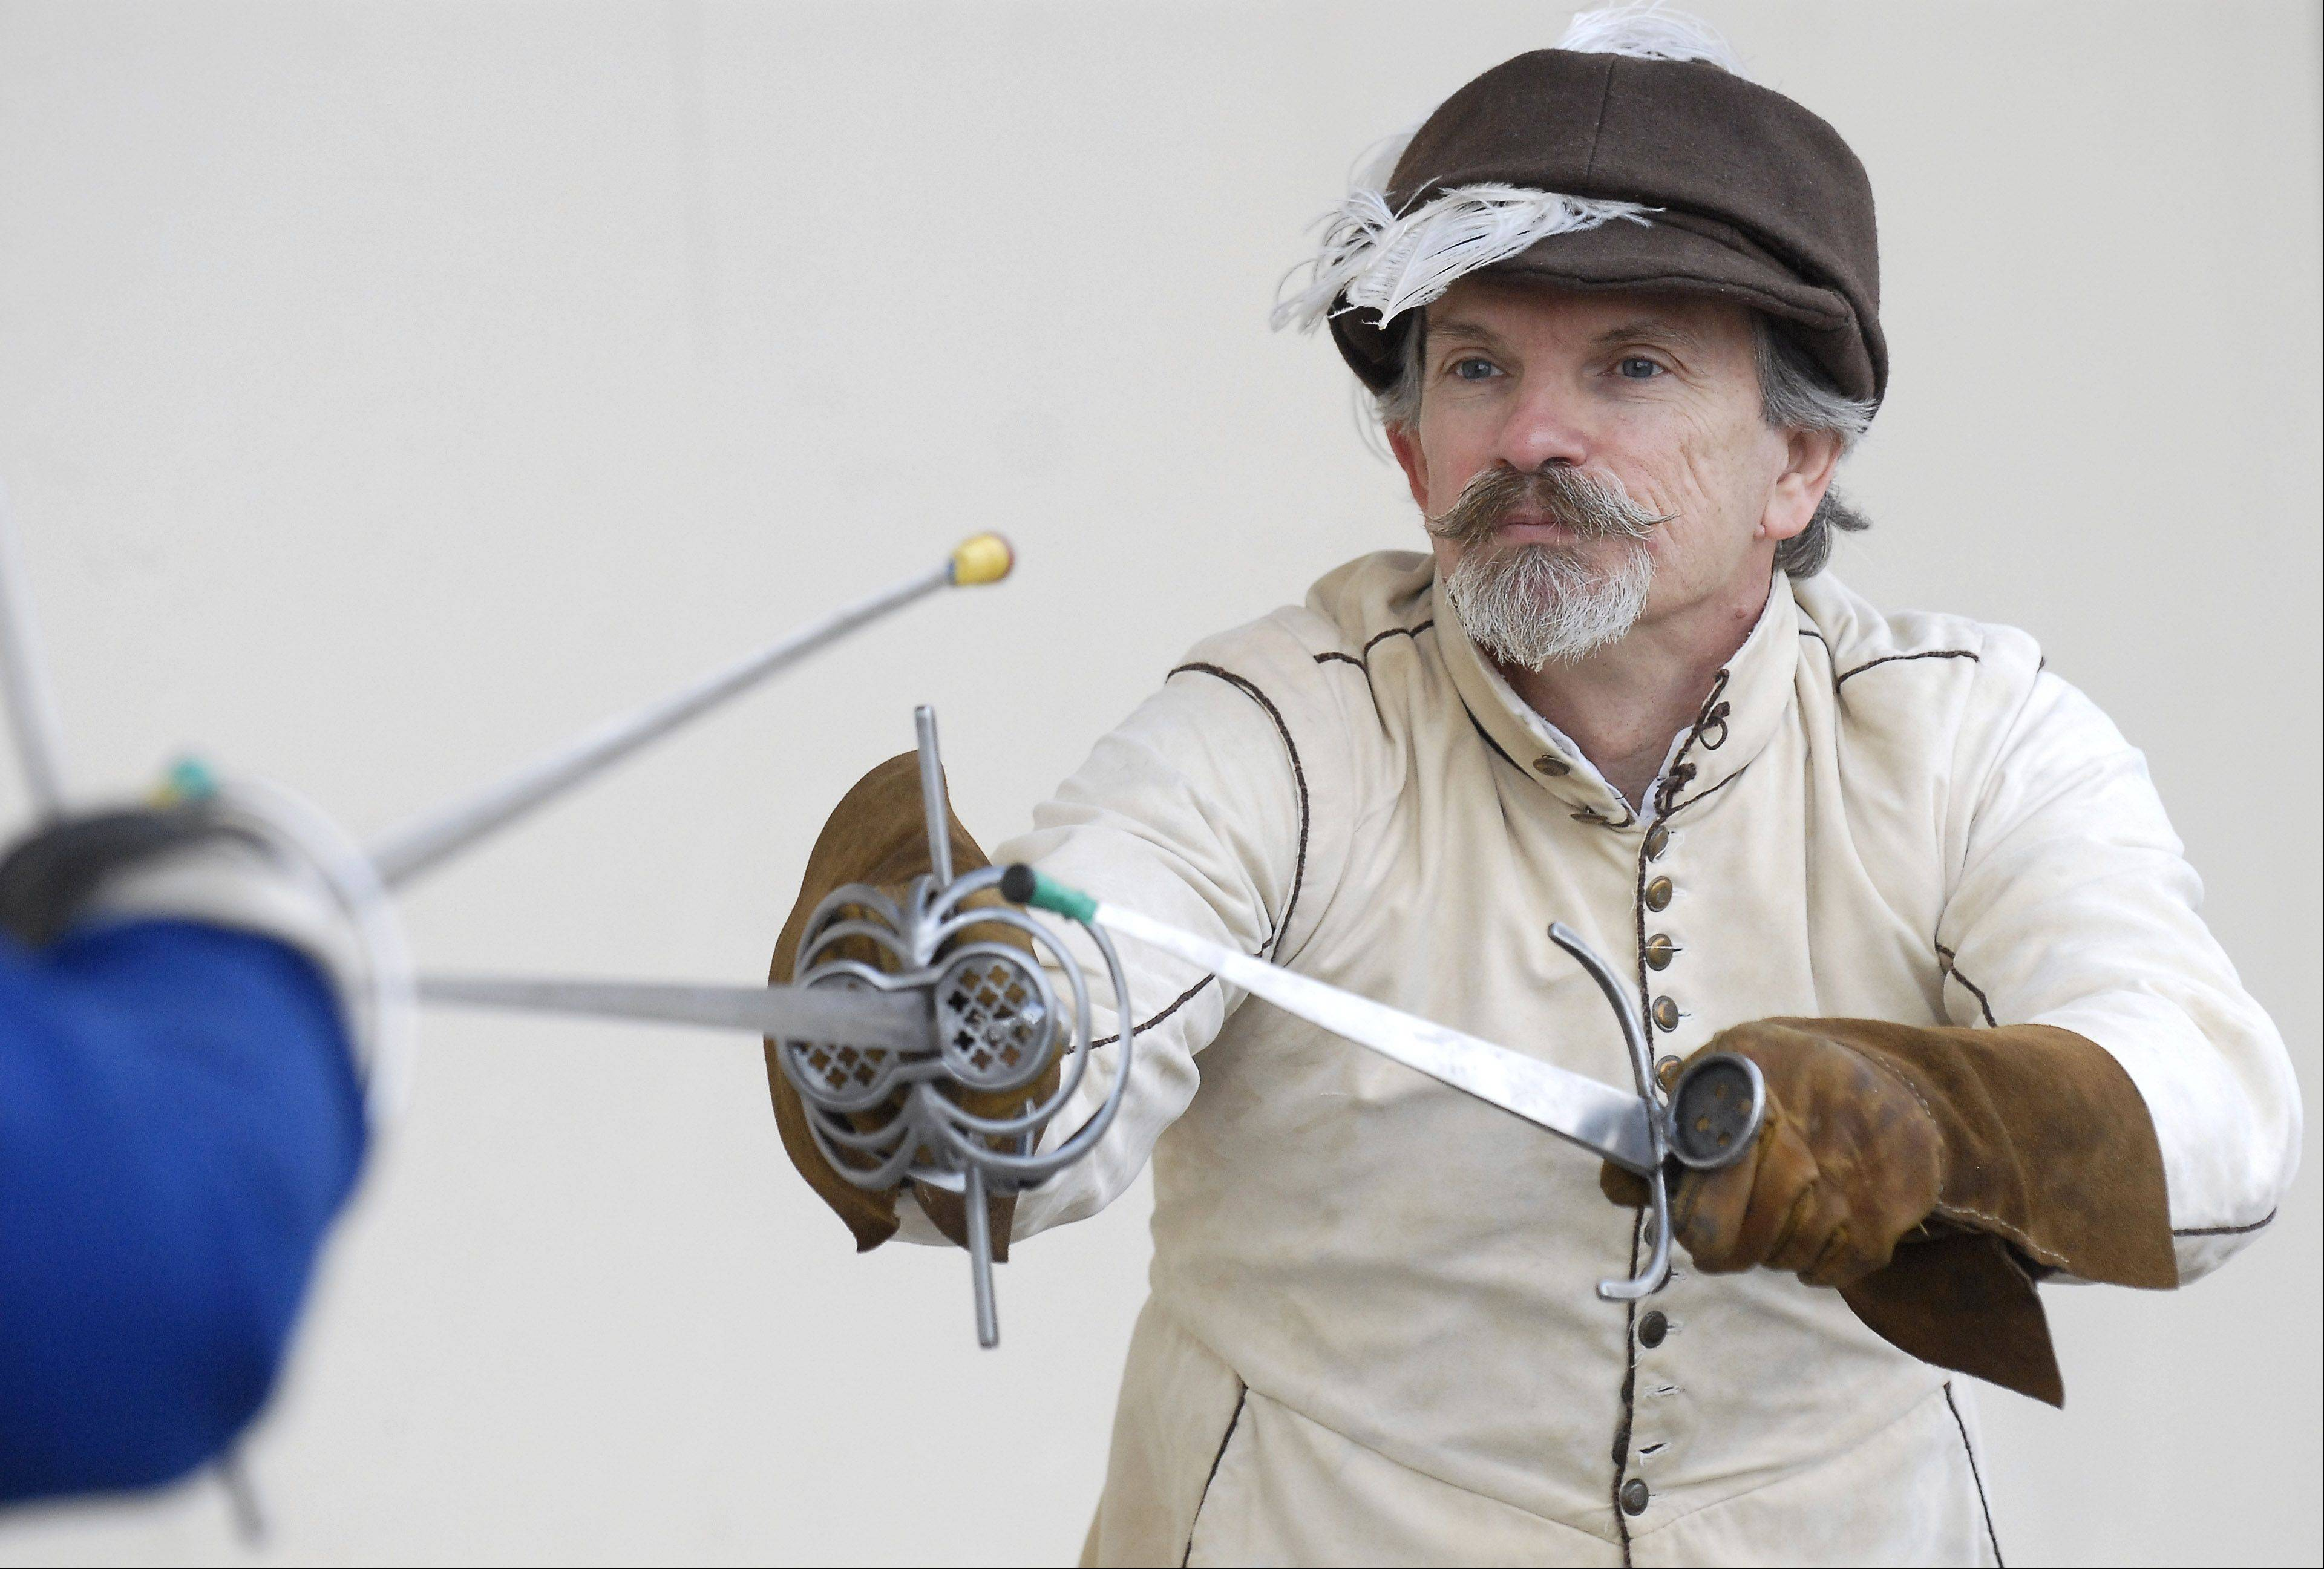 Timothy Lyon of Sycamore teaches Bob Davis of Easton, Pa., tips on Italian rapier sword fighting at last year's Military History Fest at Pheasant Run in St. Charles.